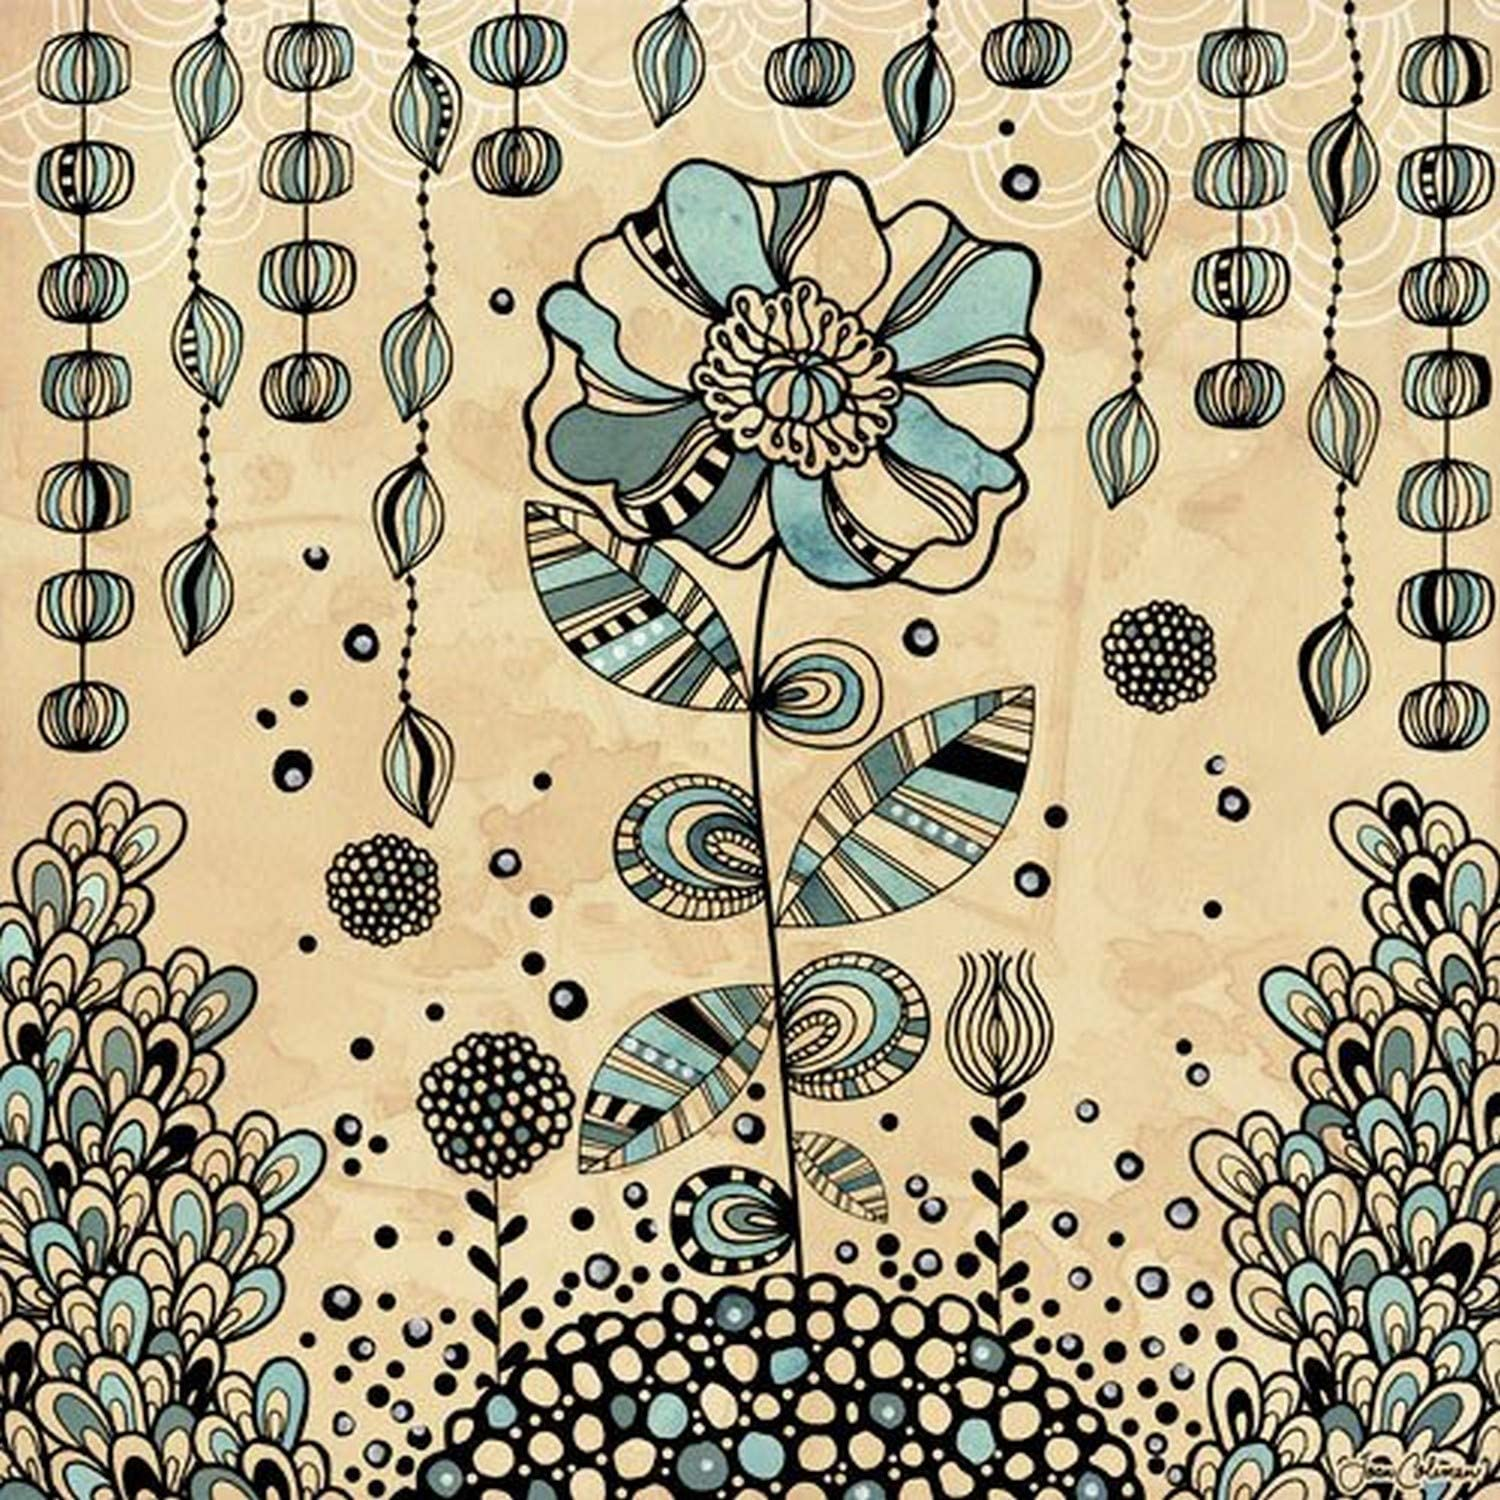 Wheatpaste Art Collective Cosmic Garden Eden by Joan Coleman Posters That Stick Wall Decal, 28 by 28-Inch